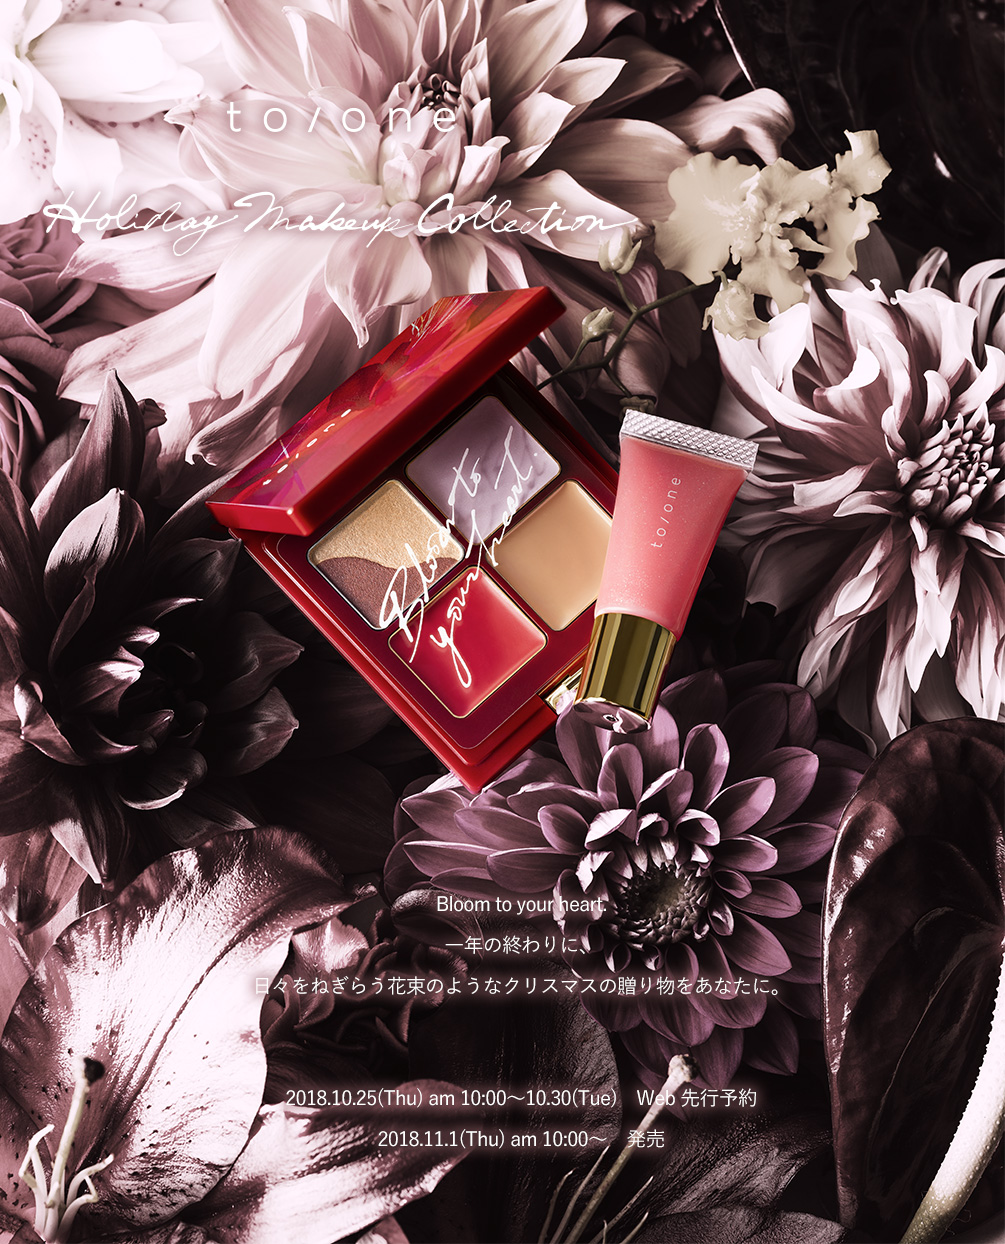 to/one Holiday Makeup Collection Bloom to your heart. 年の終わりに、日々をねぎらう花束のようなクリスマスの贈り物をあなたに。